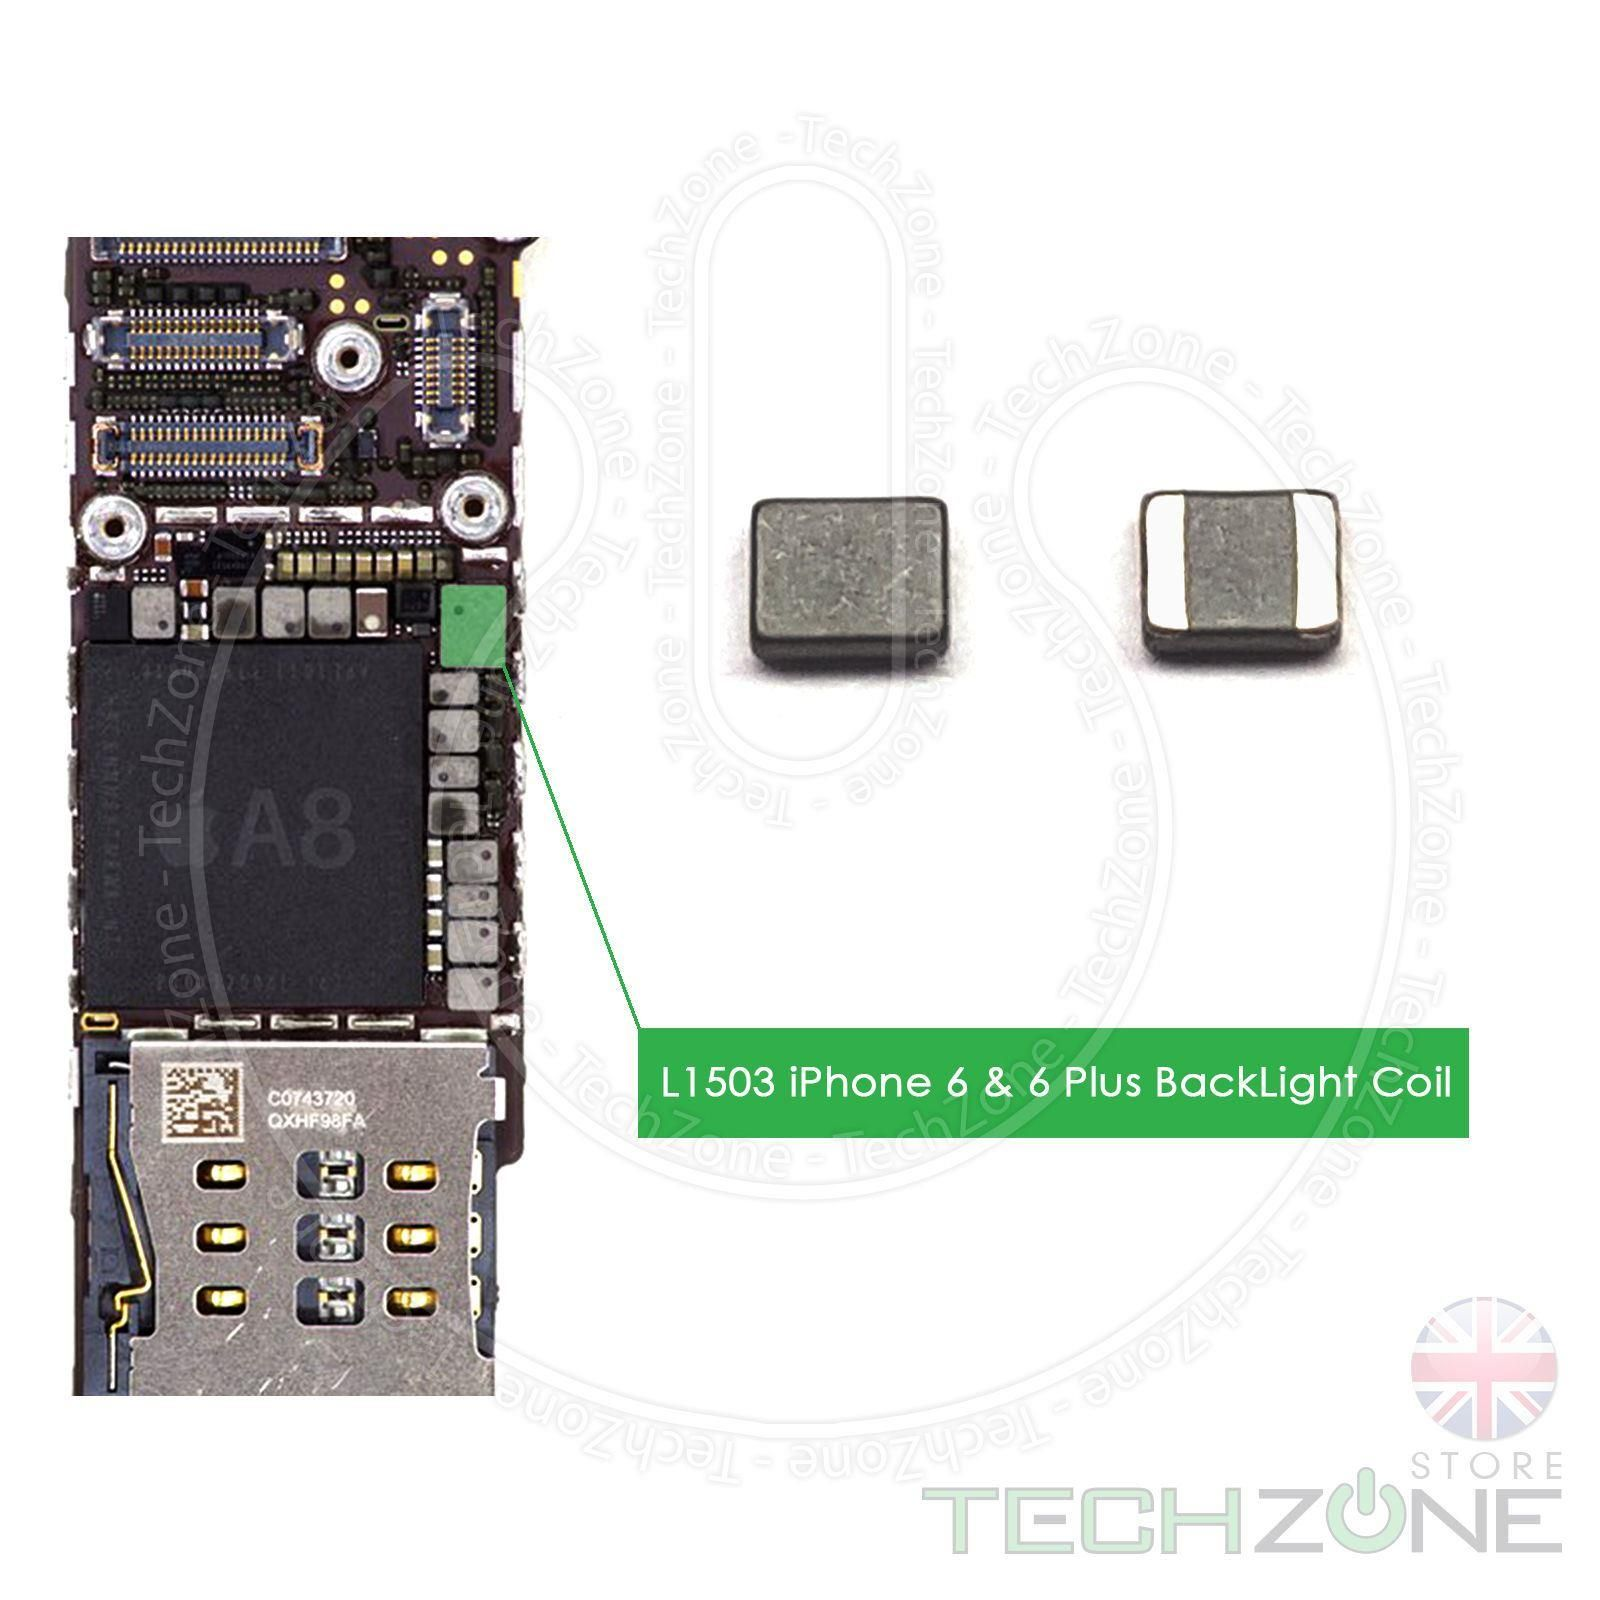 quite nice dd039 3cee8 Backlight Coil L1503 for Apple iPhone 6 4.7'' & iPhone 6 Plus 5.5'' LCD  Back Light Repair